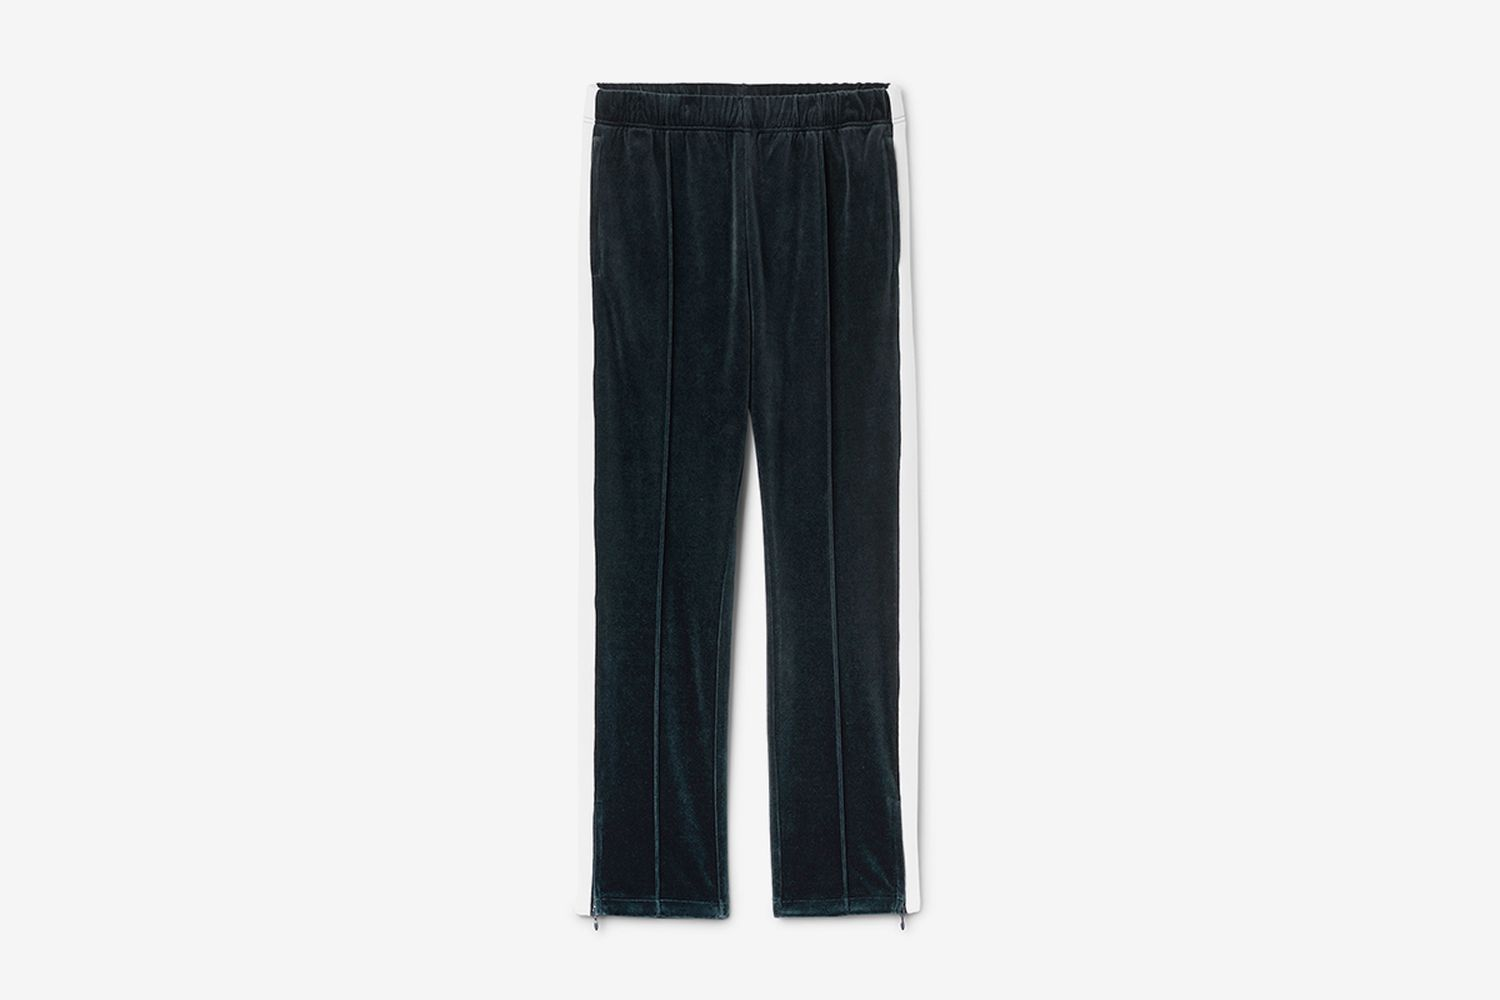 Local Velour Sweatpants